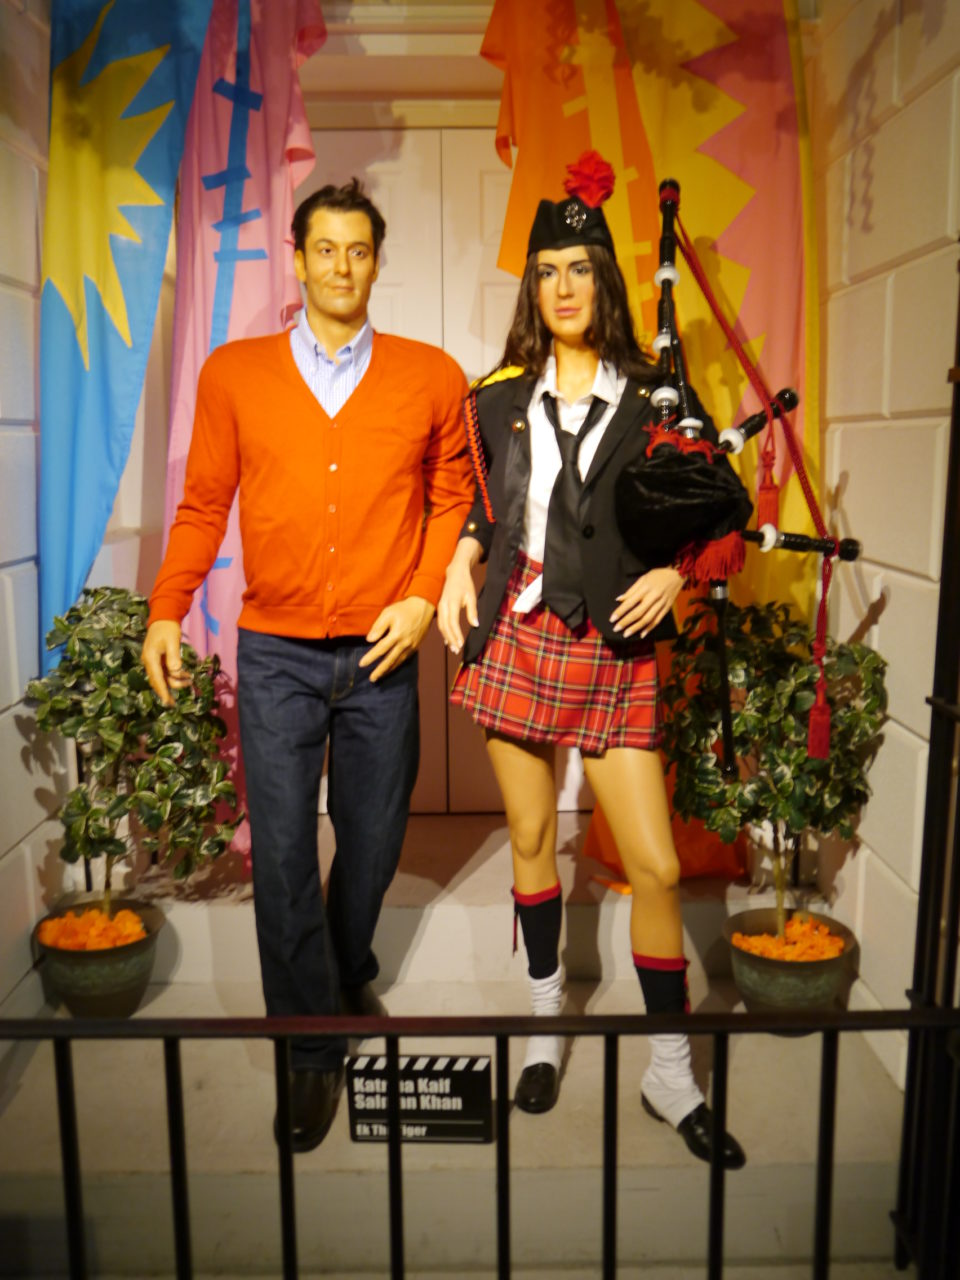 Wax Museum in Niagara Falls introduces some new additions!